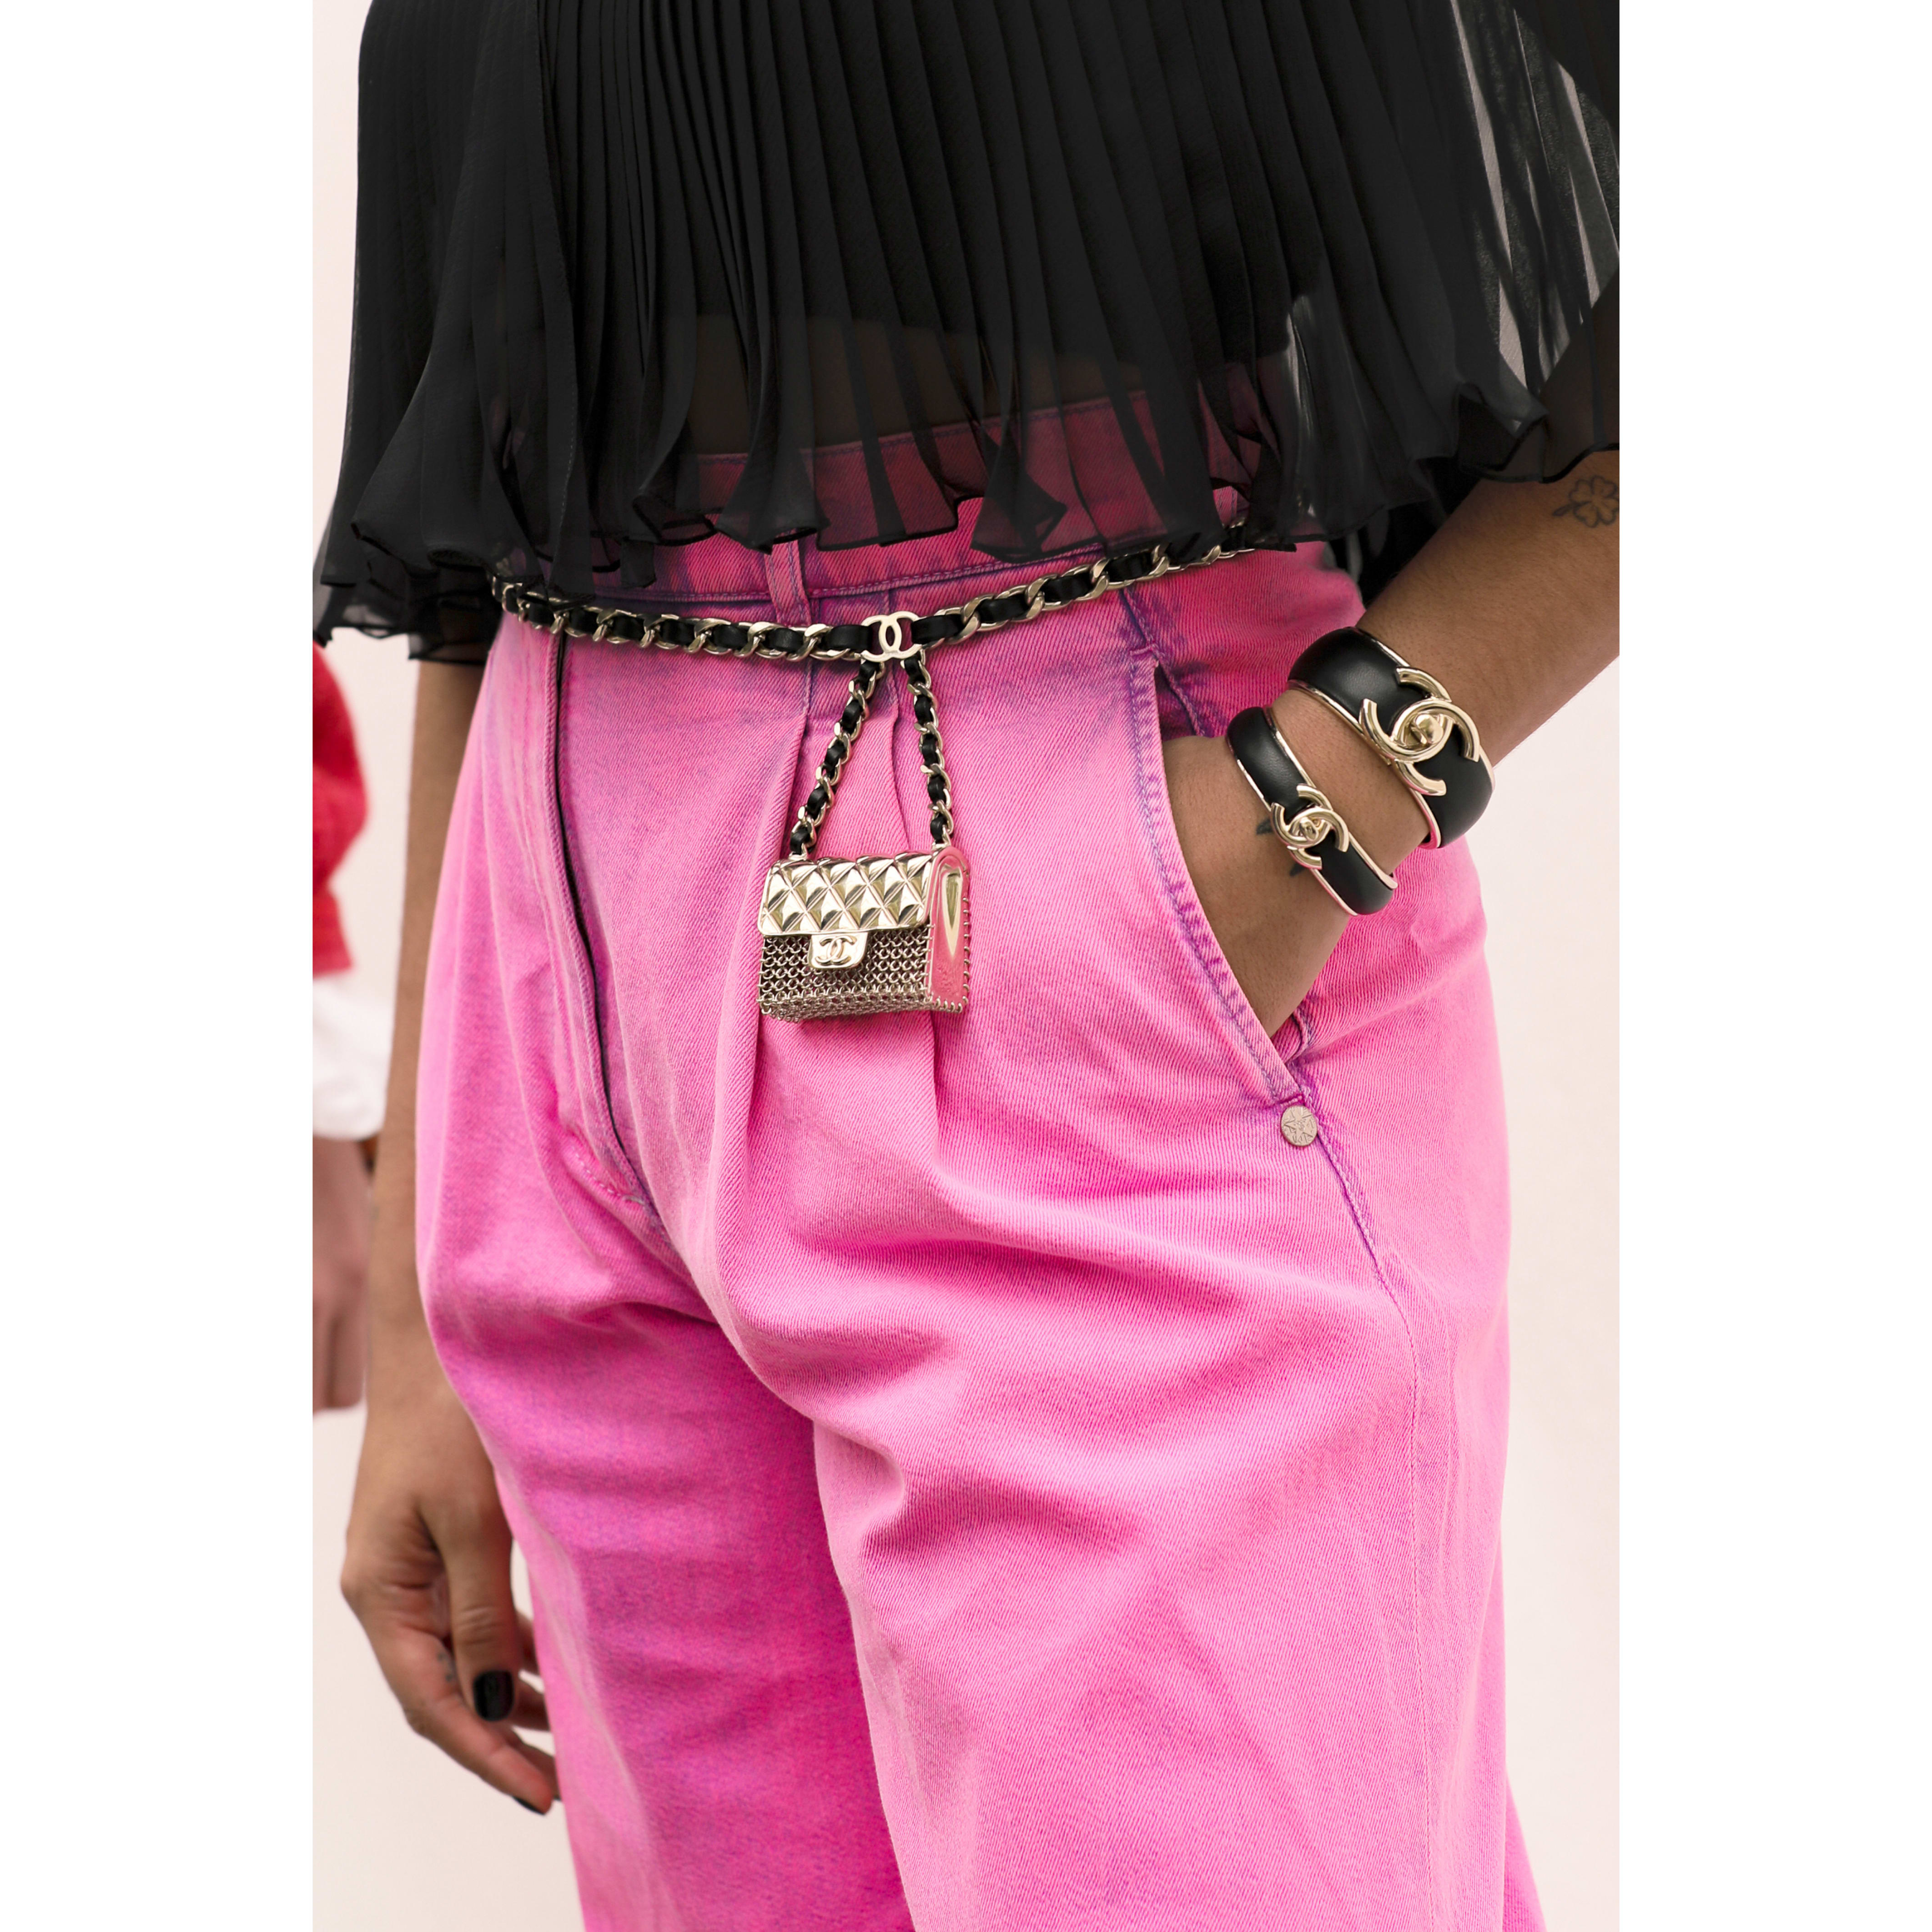 Jeans - Neon Pink - Washed Out Denim - CHANEL - Alternative view - see standard sized version